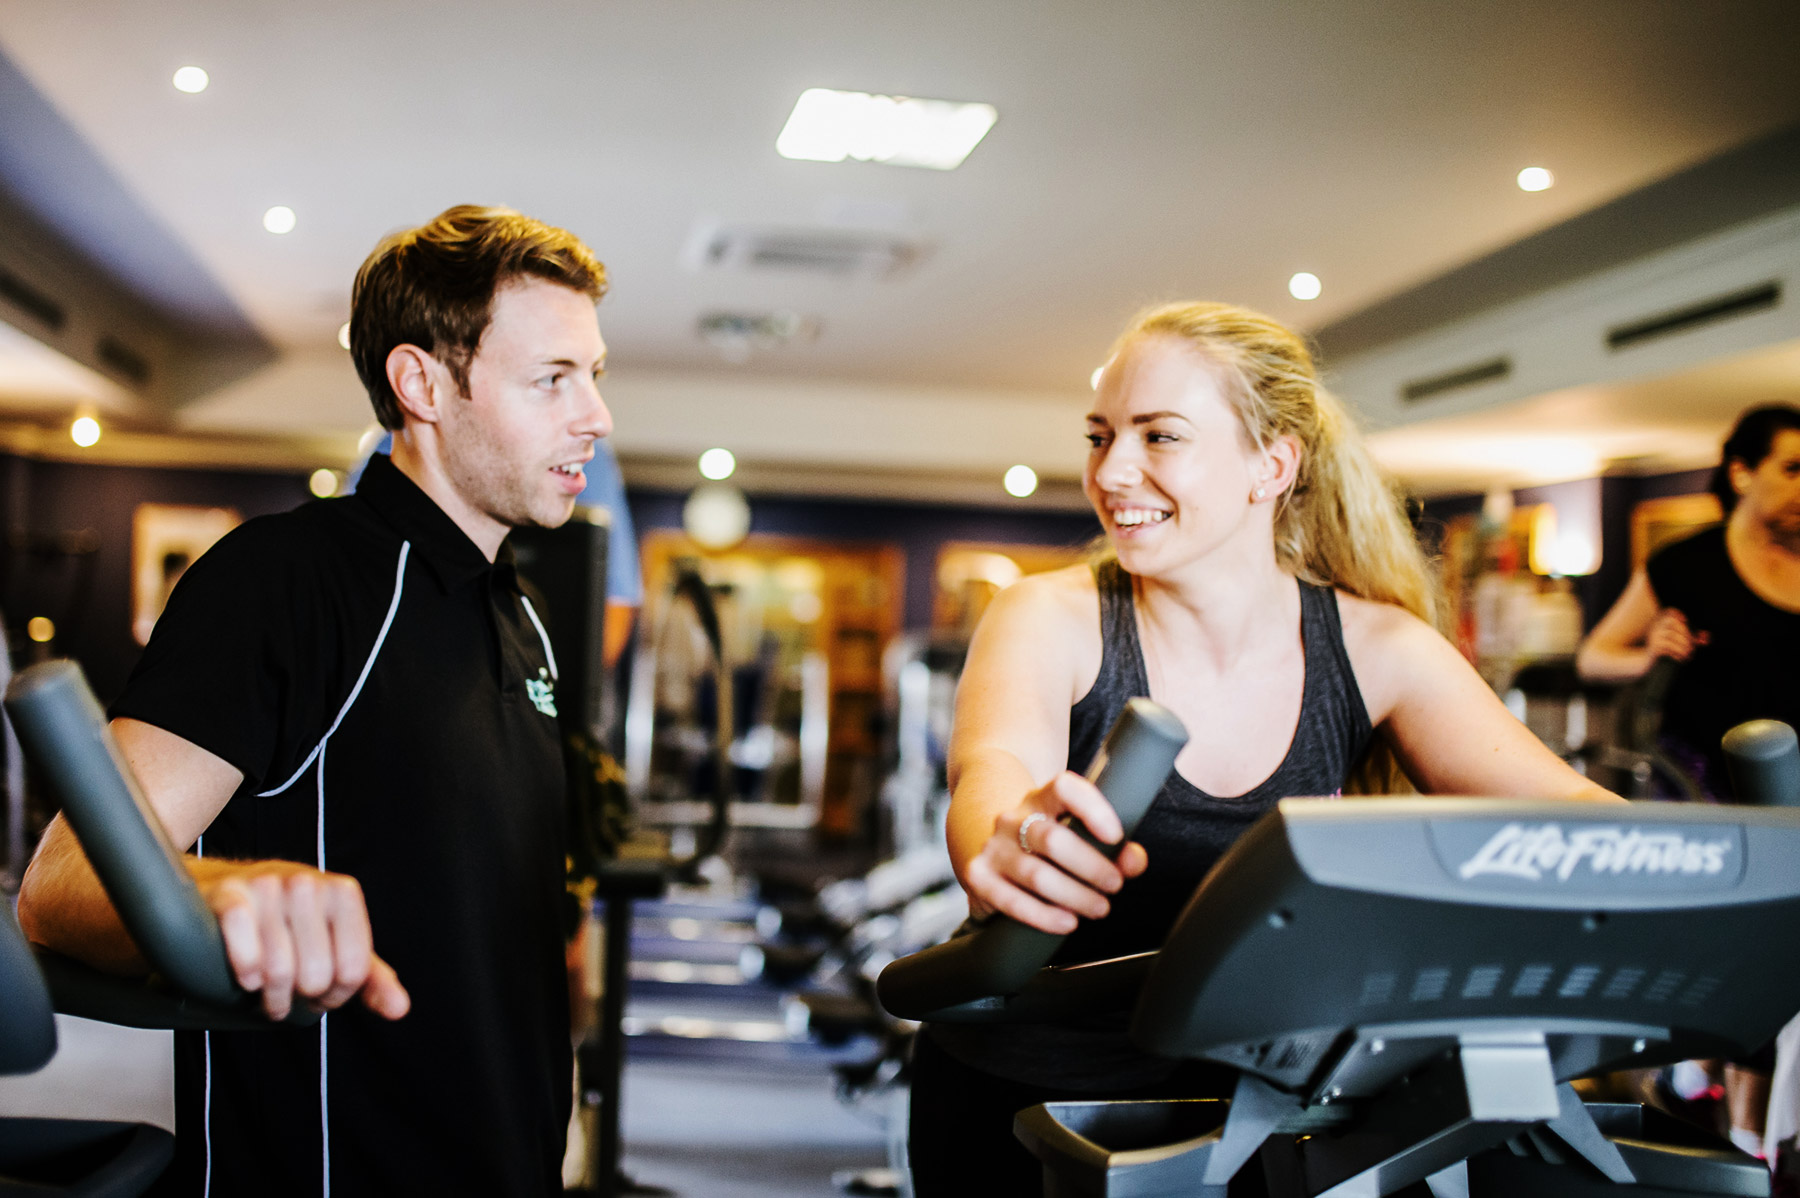 North Lakes Sports Club Jobs Spa Hotel With Gym In Penrith North Lakes Hotel Spa